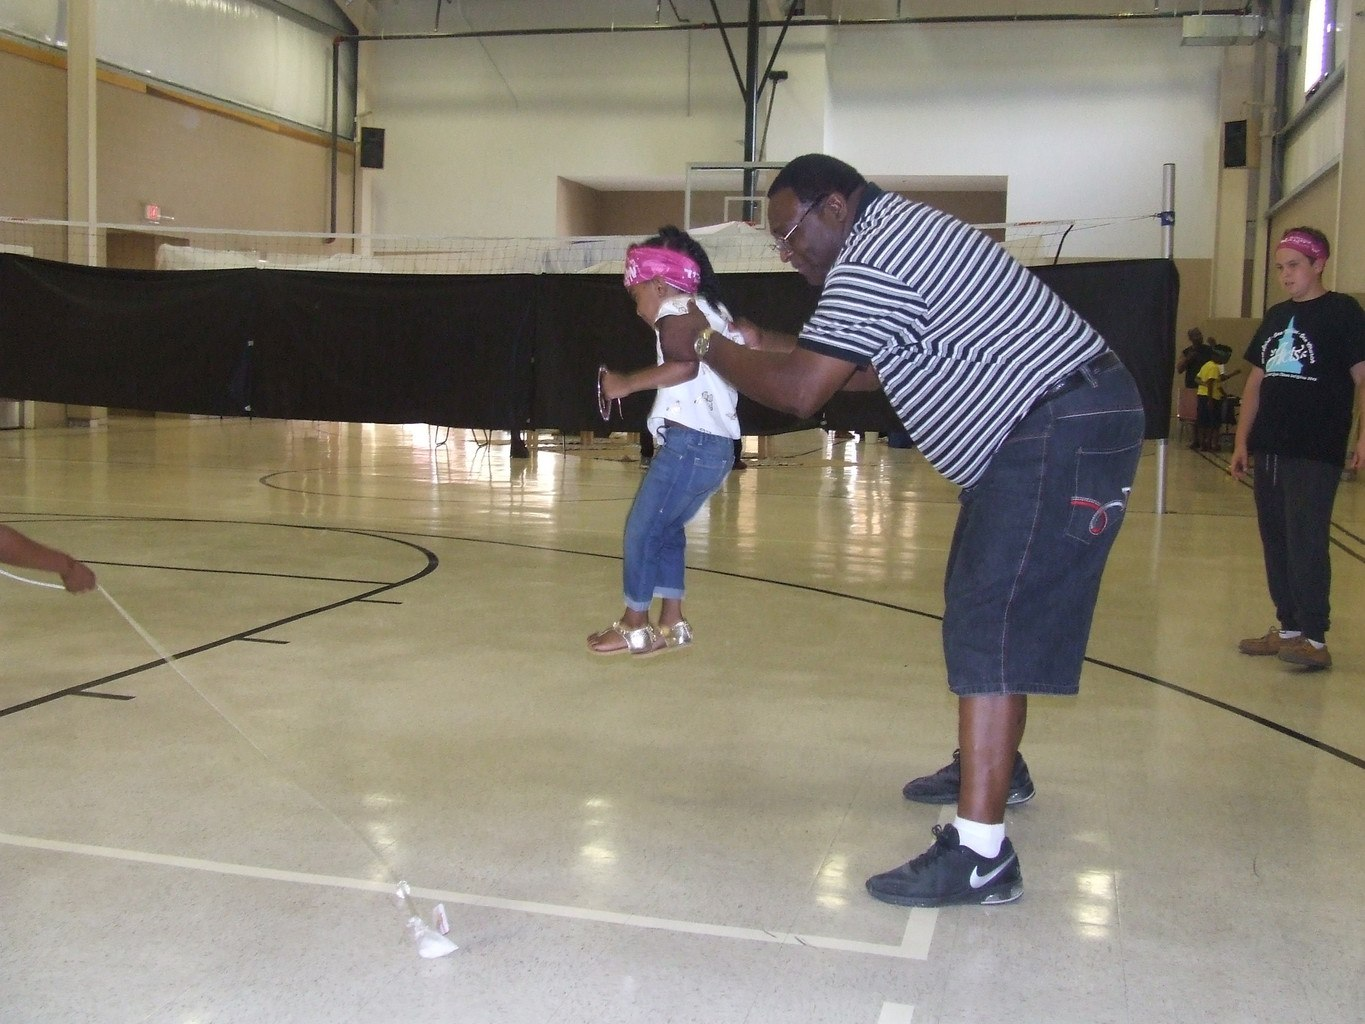 Minister Willie Bush help a child to do jump rope and another child looking on